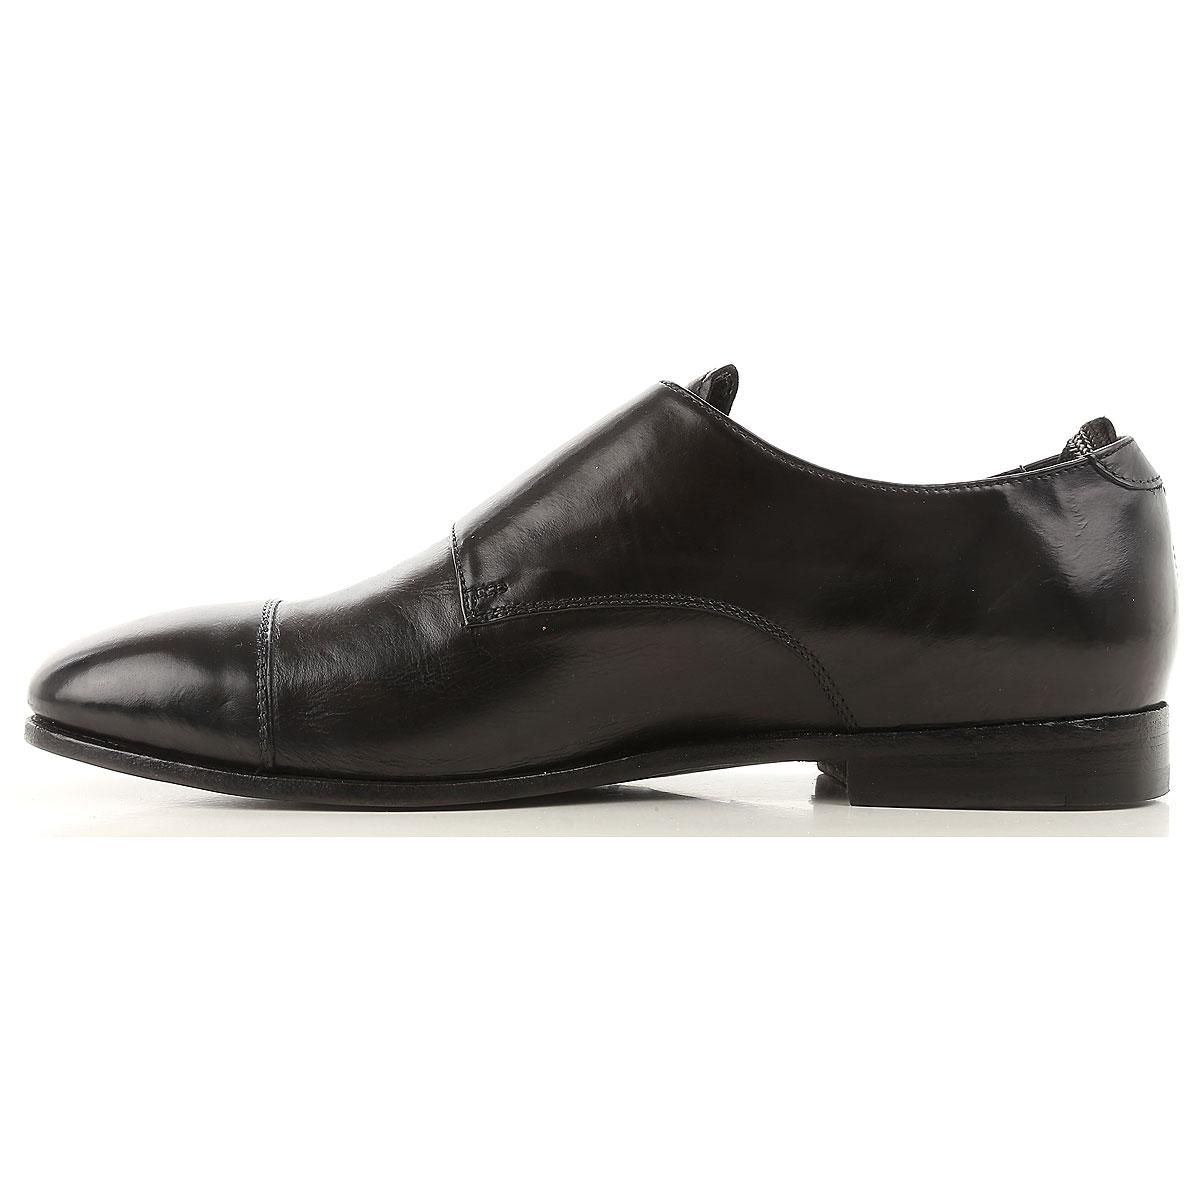 1d9d2d19de Officine Creative - Black Zapatos Monkstrap de Hebilla para Hombre Baratos  en Rebajas Outlet for Men. Ver en pantalla completa